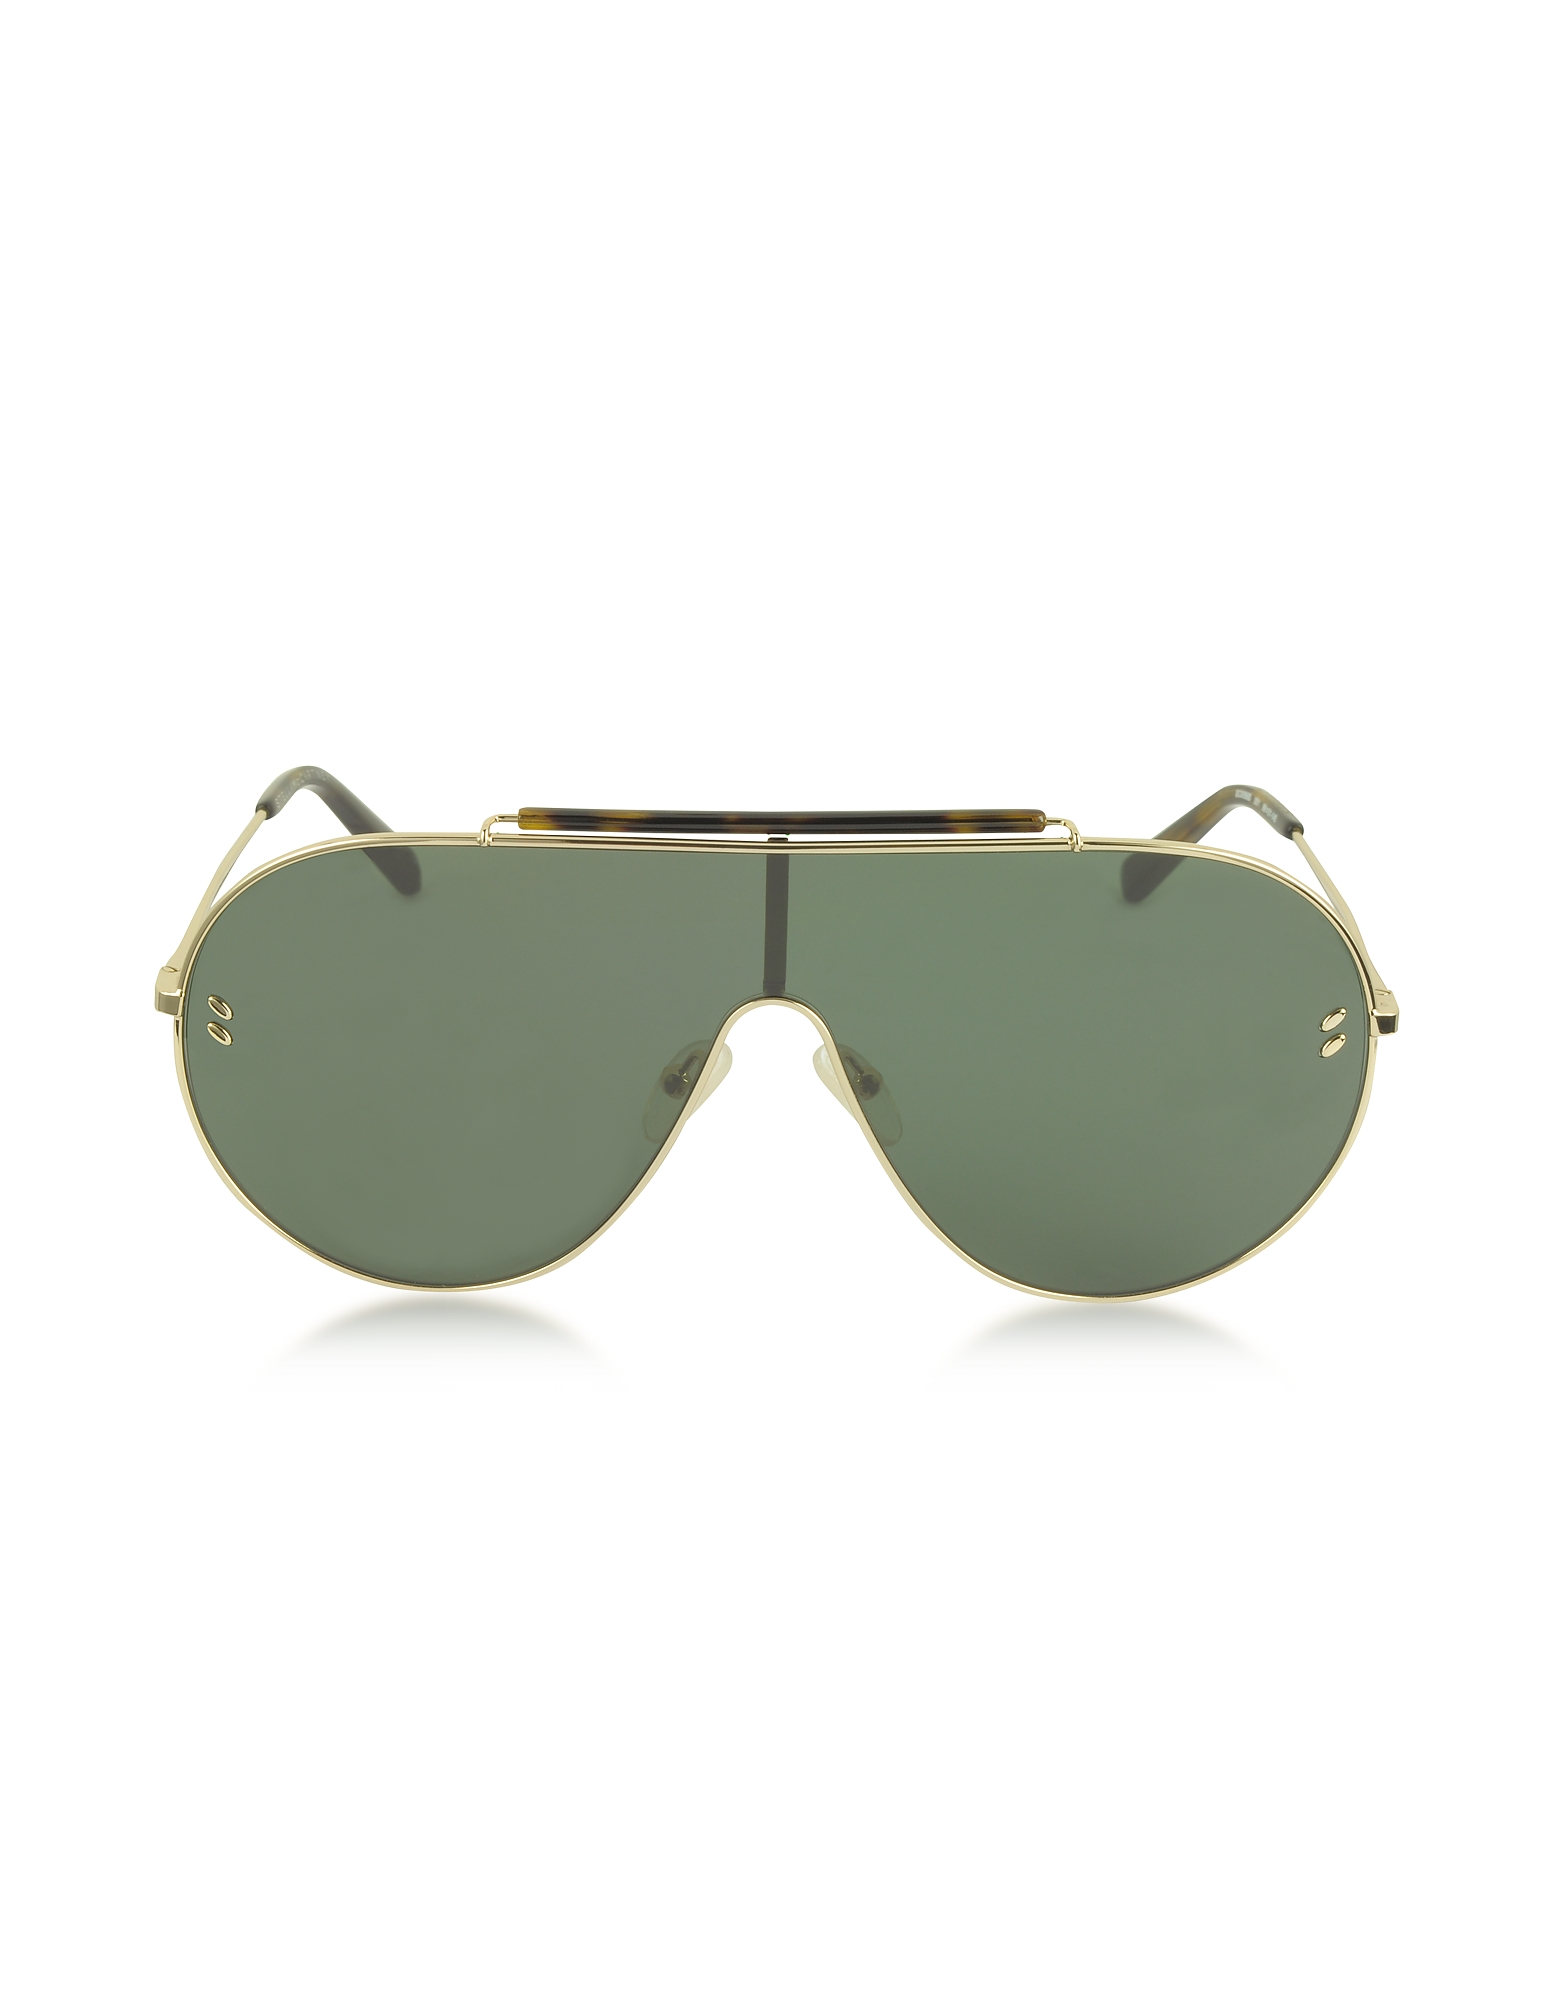 Stella McCartney Sunglasses, SC0056S Metal Aviator Women's Sunglasses